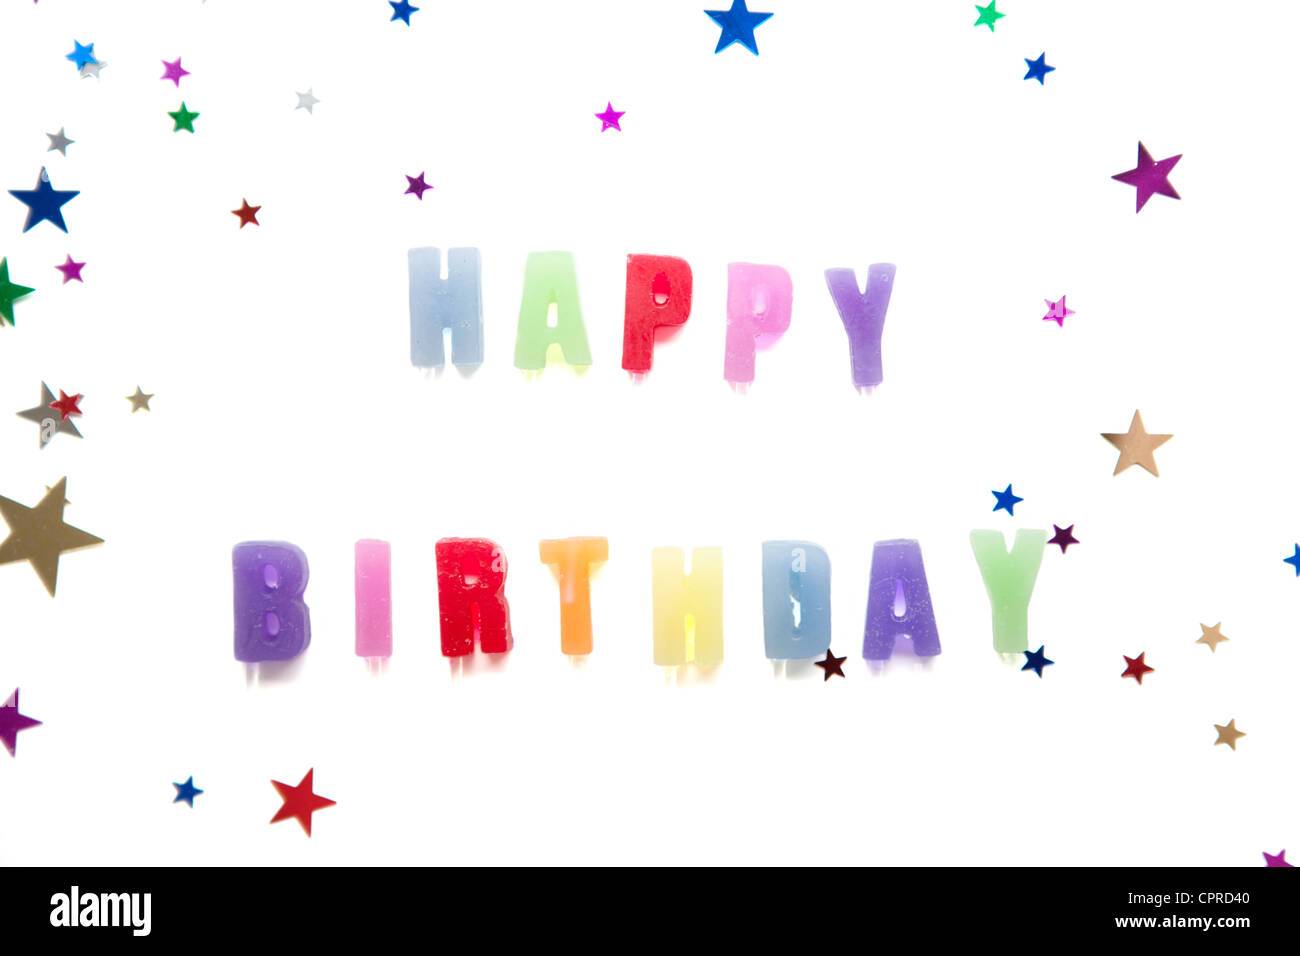 the words happy birthday using candles set on a white background